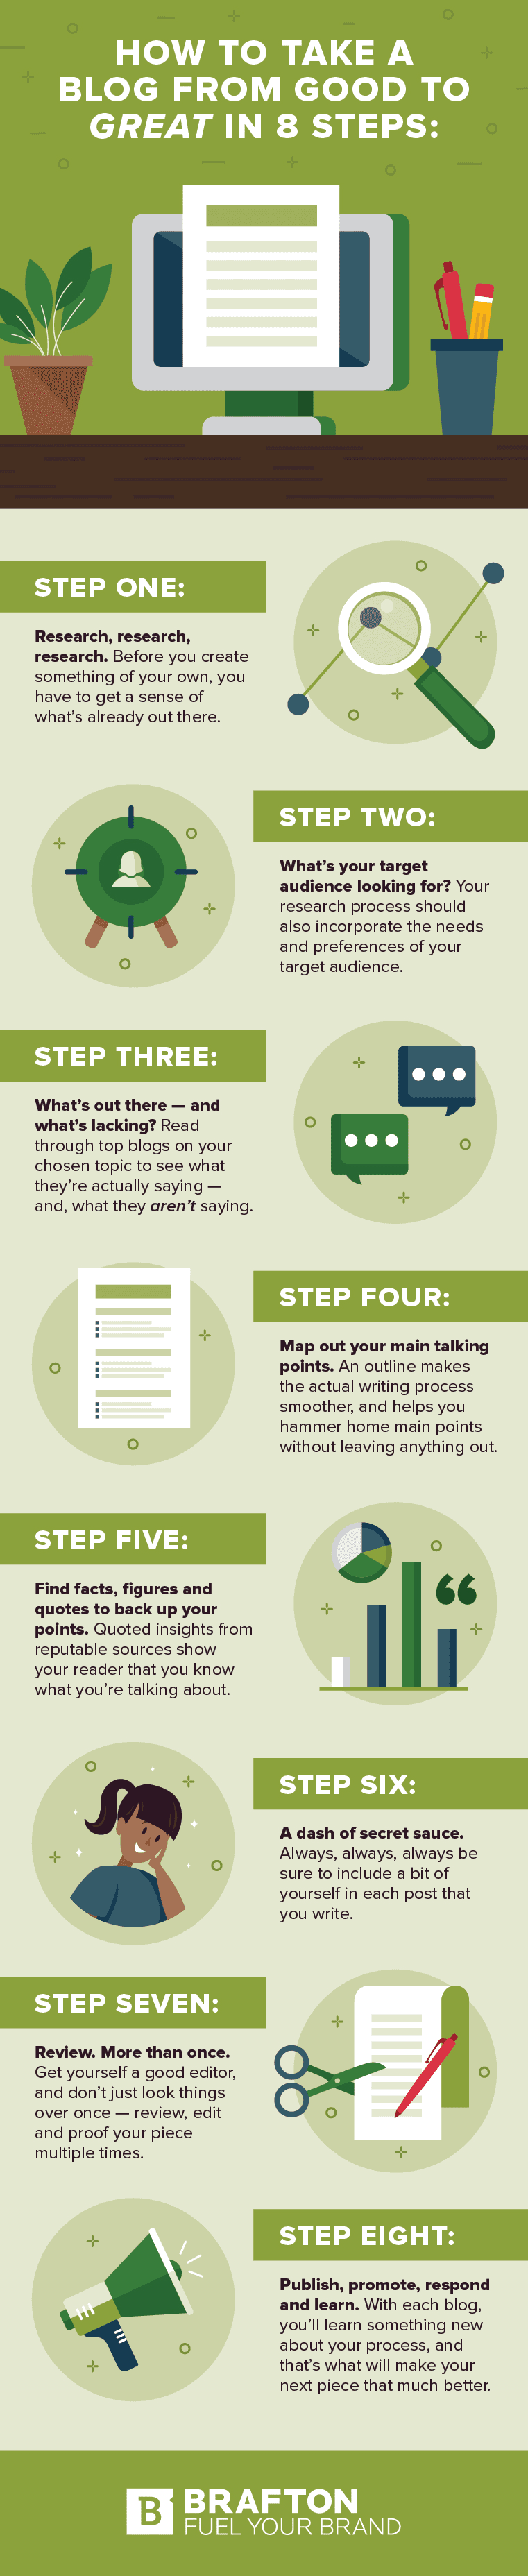 Infographic outlines how to create and promote a blog post